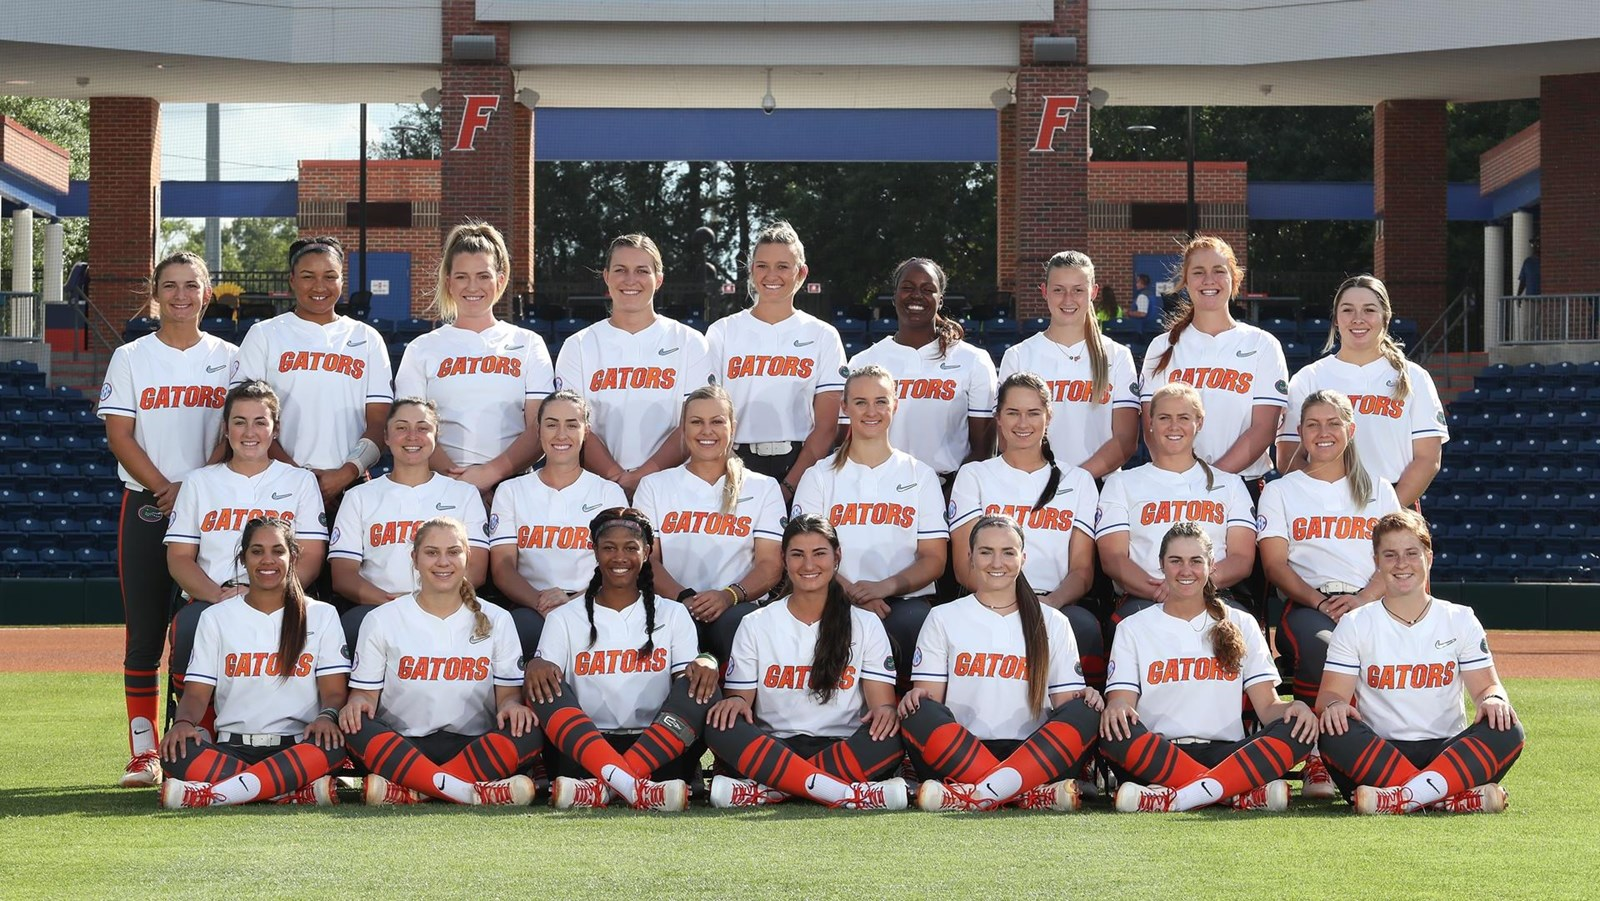 2019 Softball Roster Florida Gators